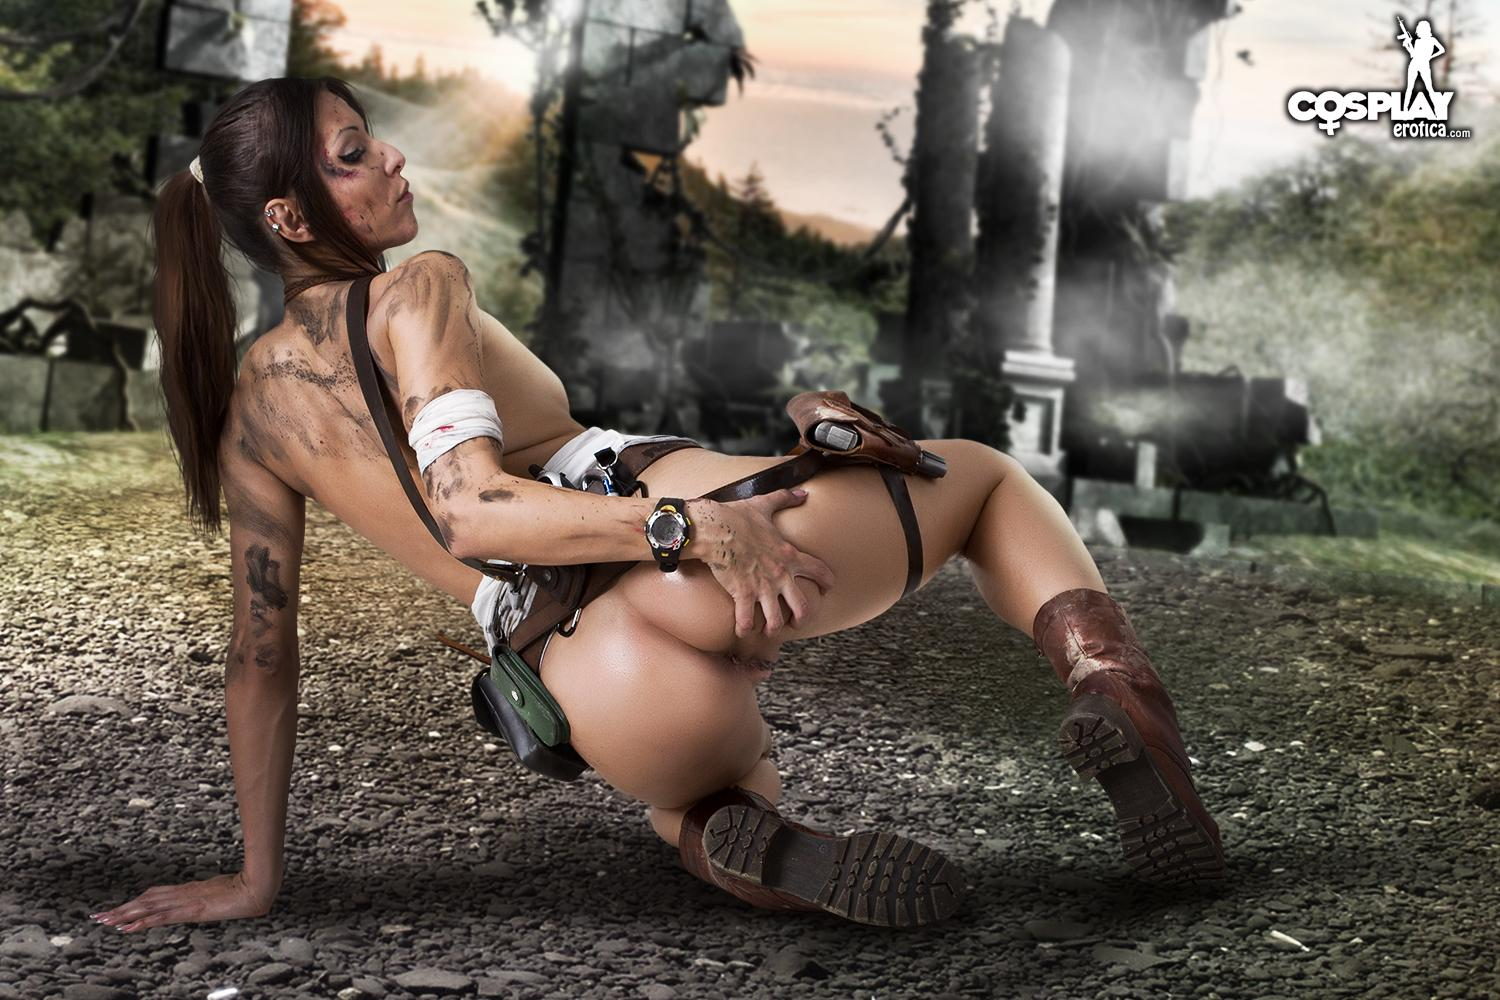 Cosplay tomb raider erotic porn pictures erotic picture